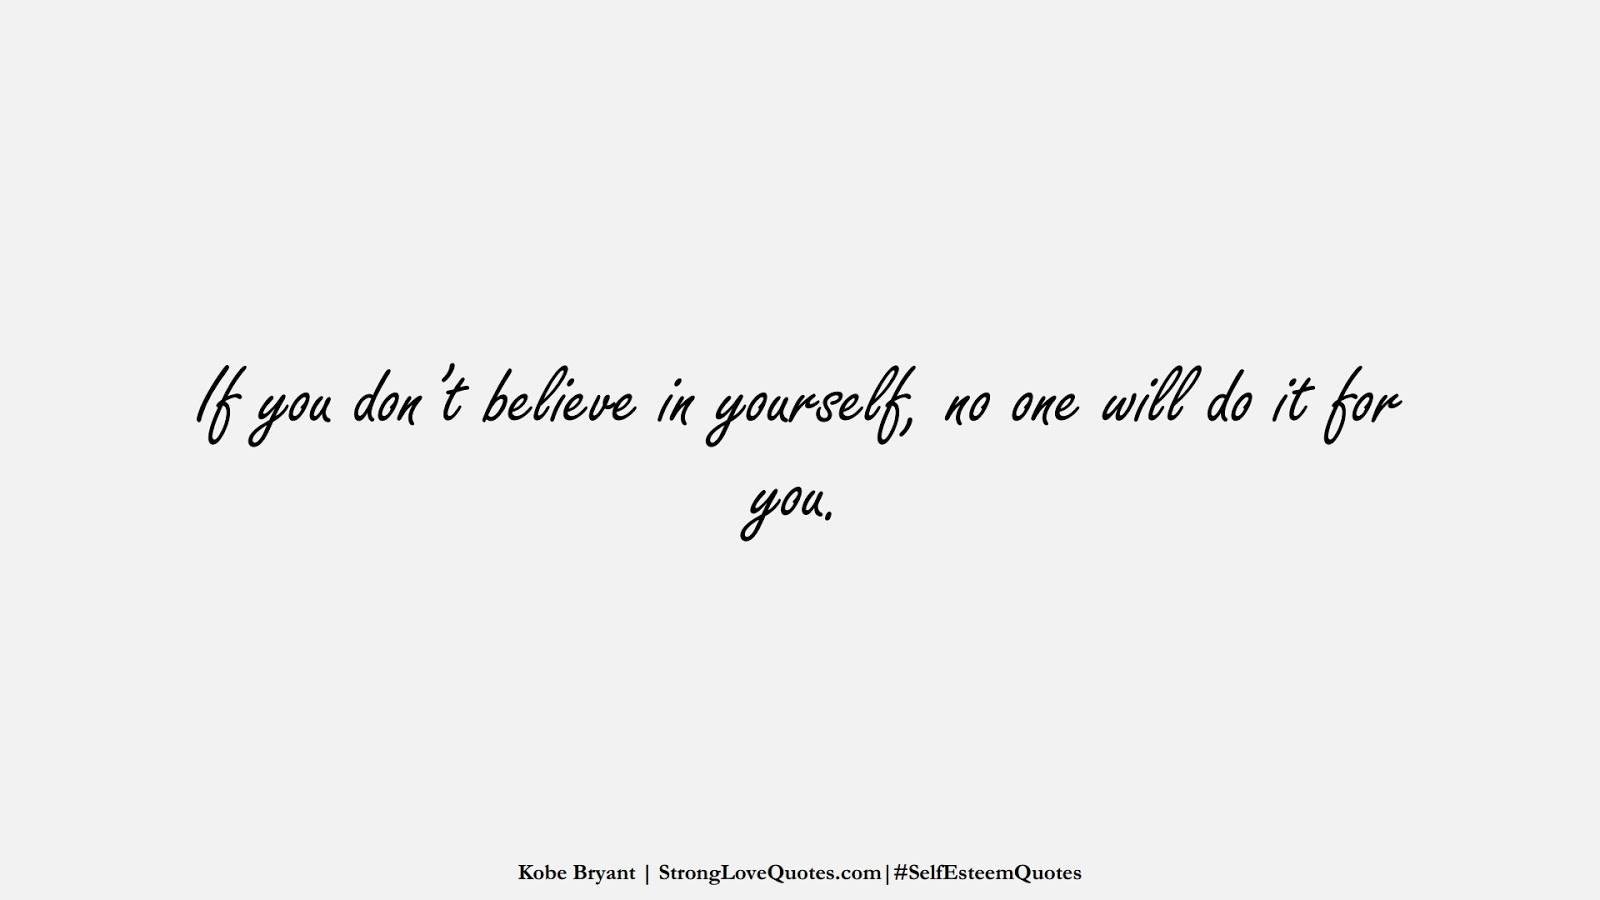 If you don't believe in yourself, no one will do it for you. (Kobe Bryant);  #SelfEsteemQuotes